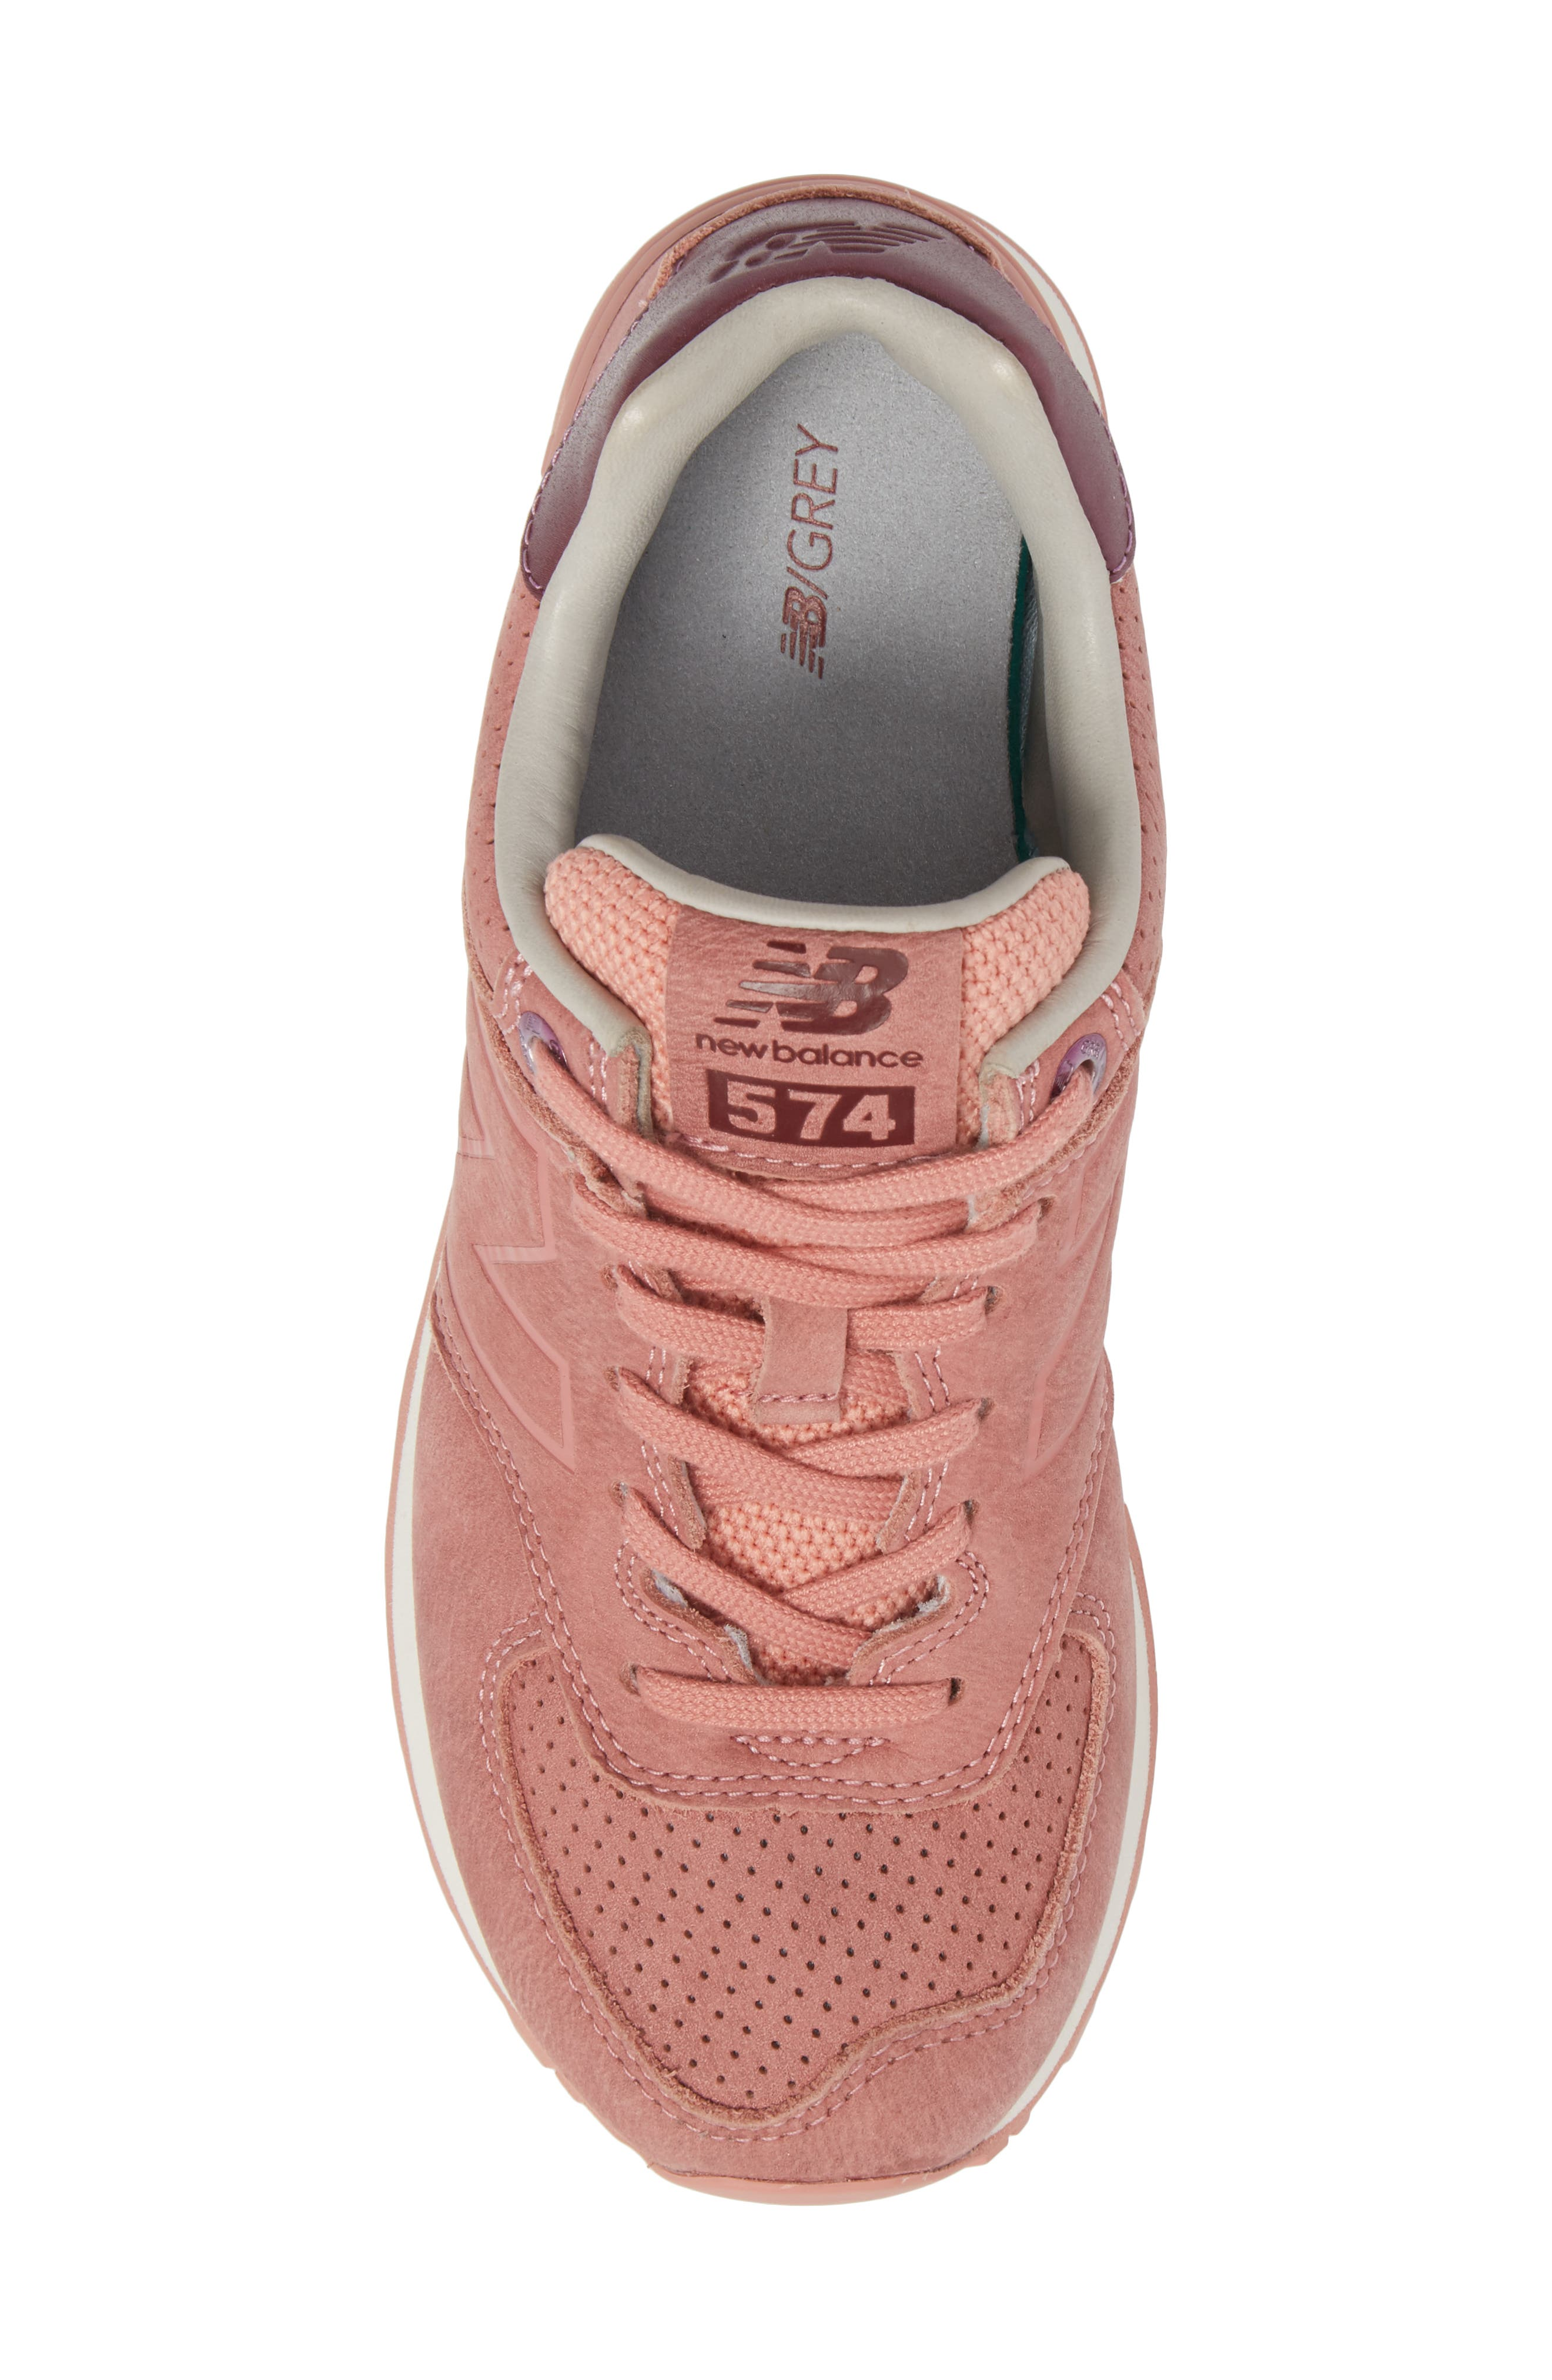 574 Sneaker,                             Alternate thumbnail 5, color,                             Dusted Peach